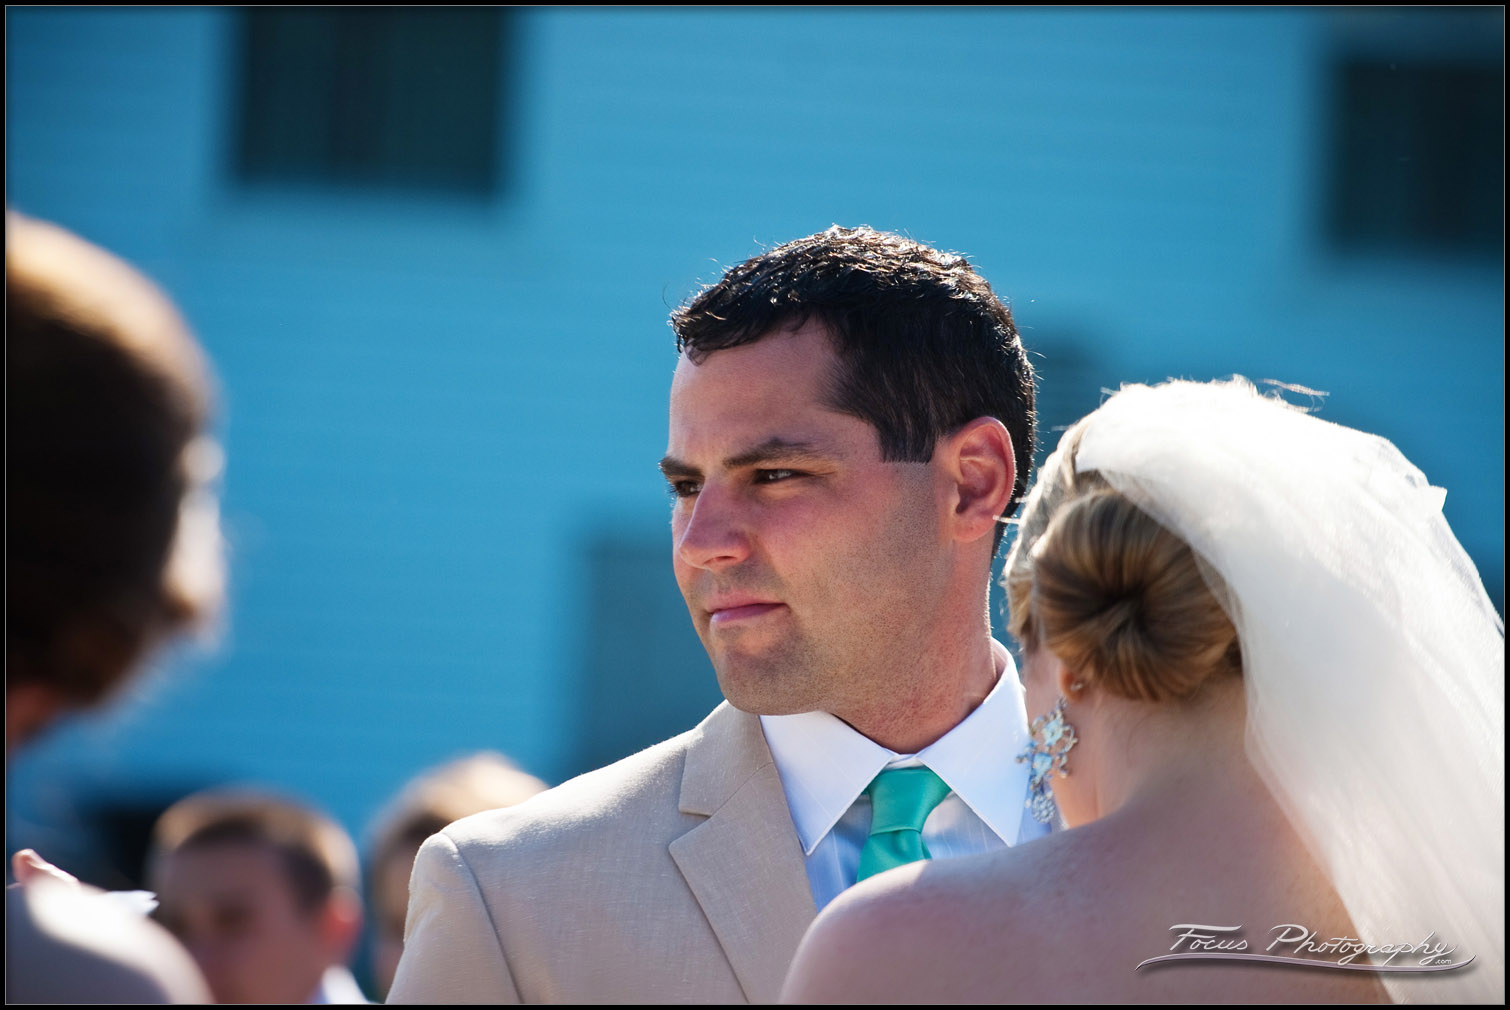 JT pays attention during the wedding ceremony at York Beach, Maine. Wedding photographers will and lucia of Focus